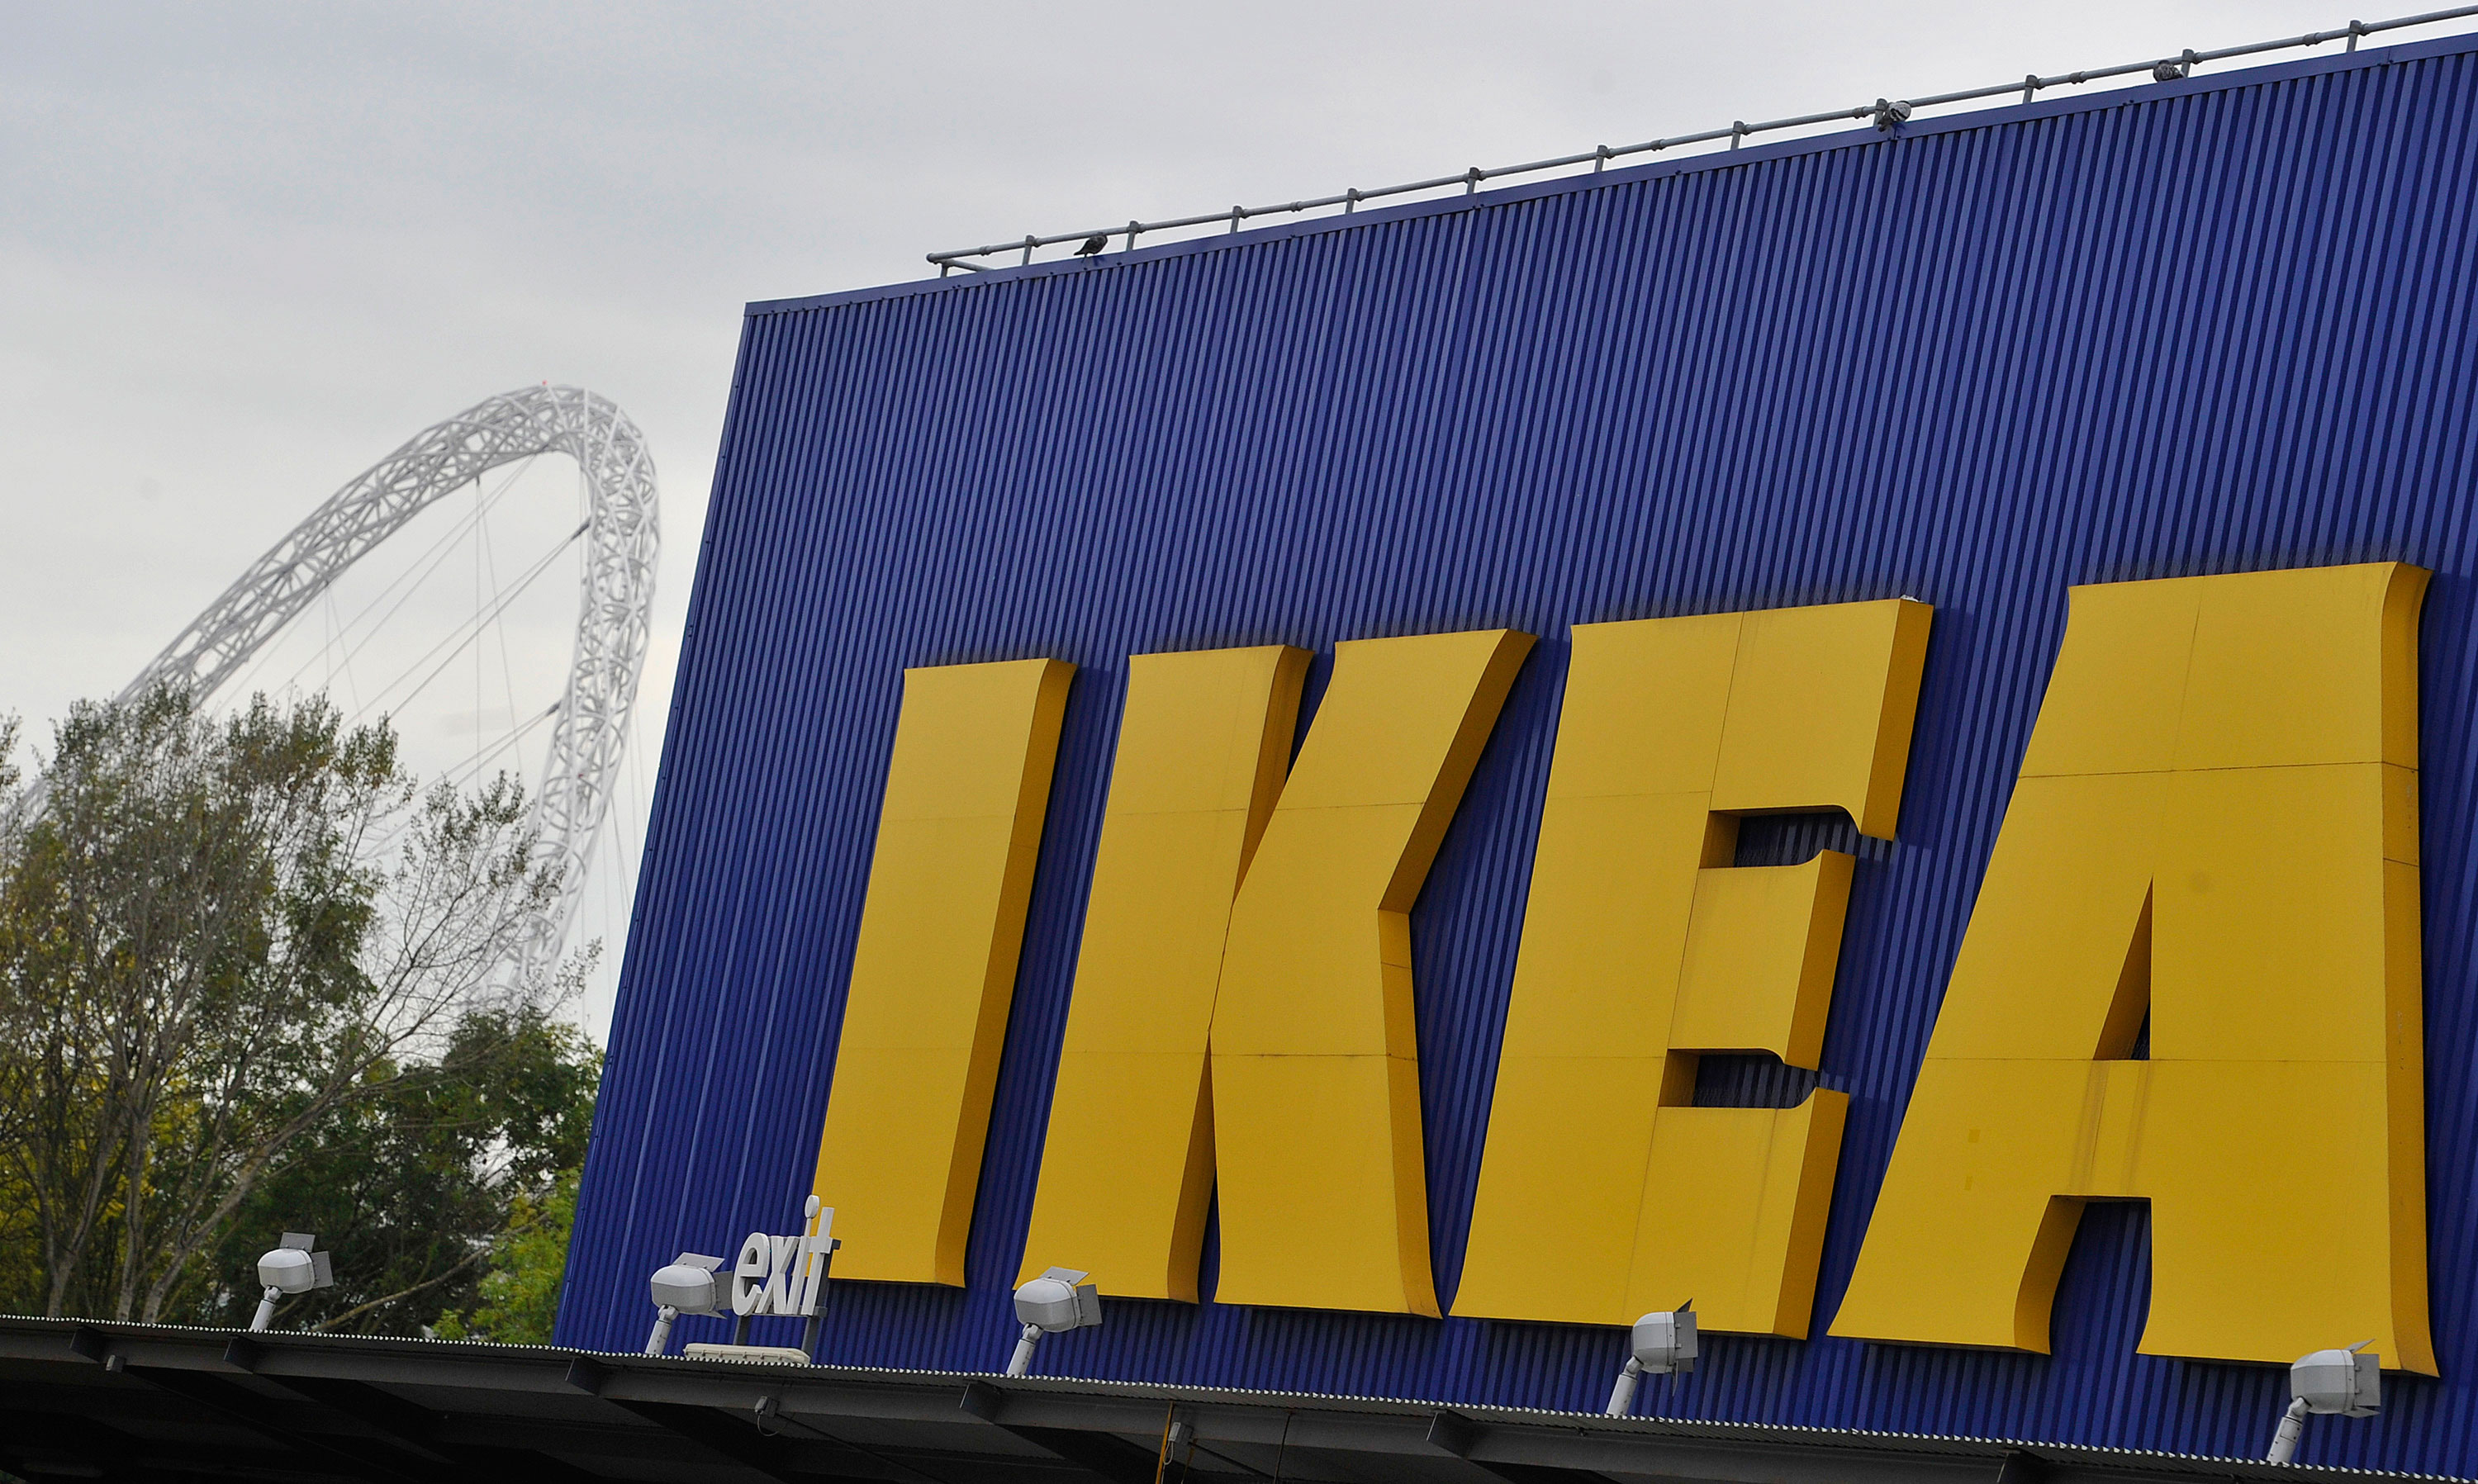 Furniture retail giant IKEA moves a step closer to enter India; buys land in Hyderabad